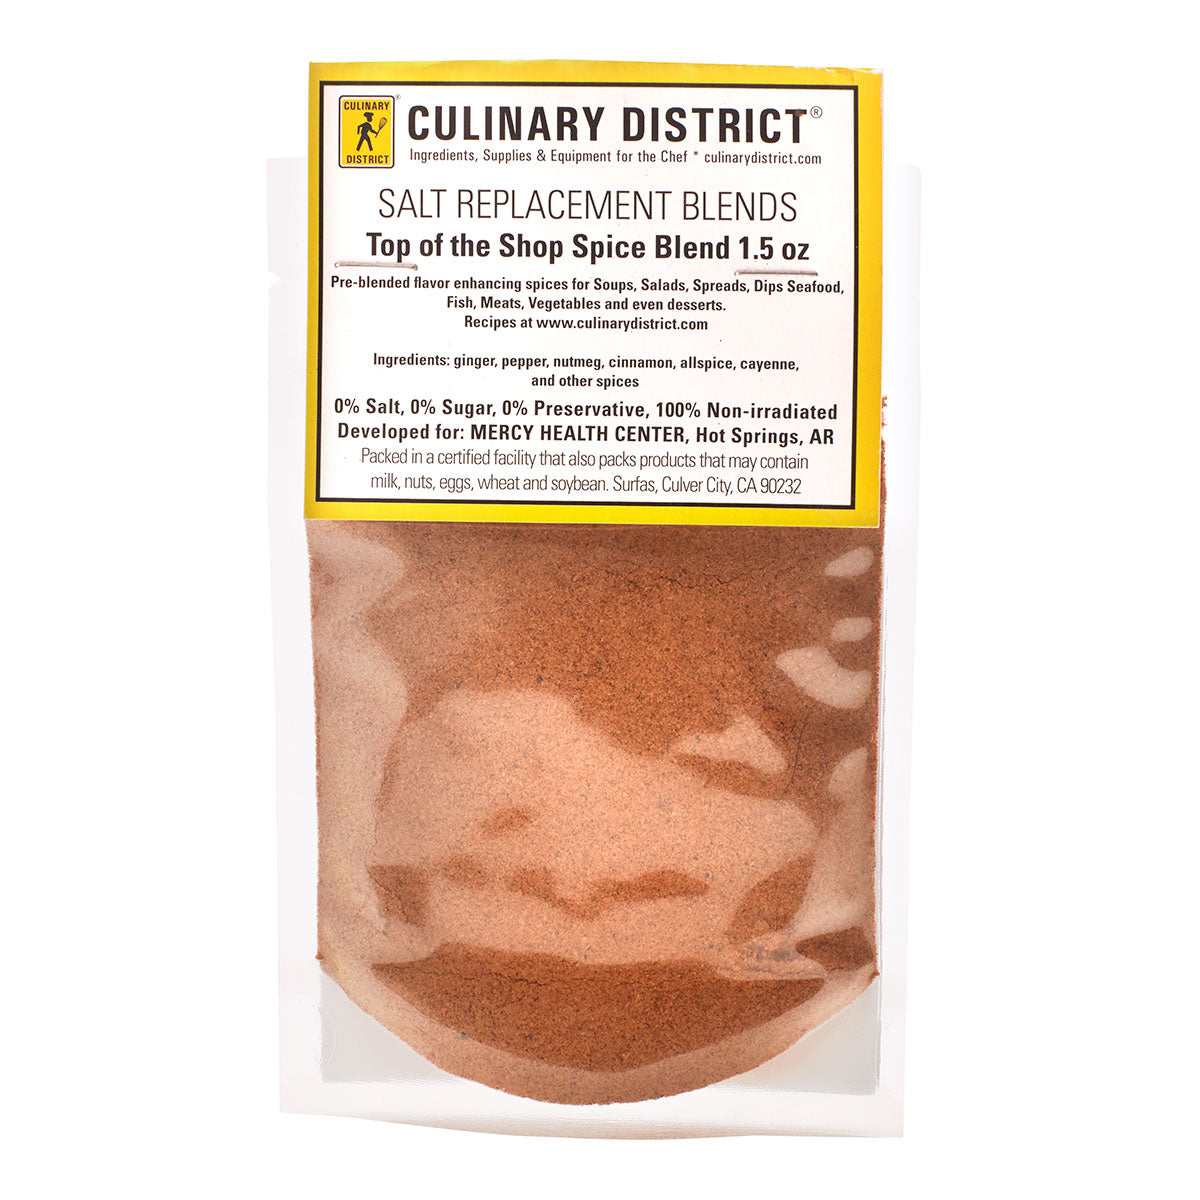 Top of the Shop Spice Blend 1.5oz